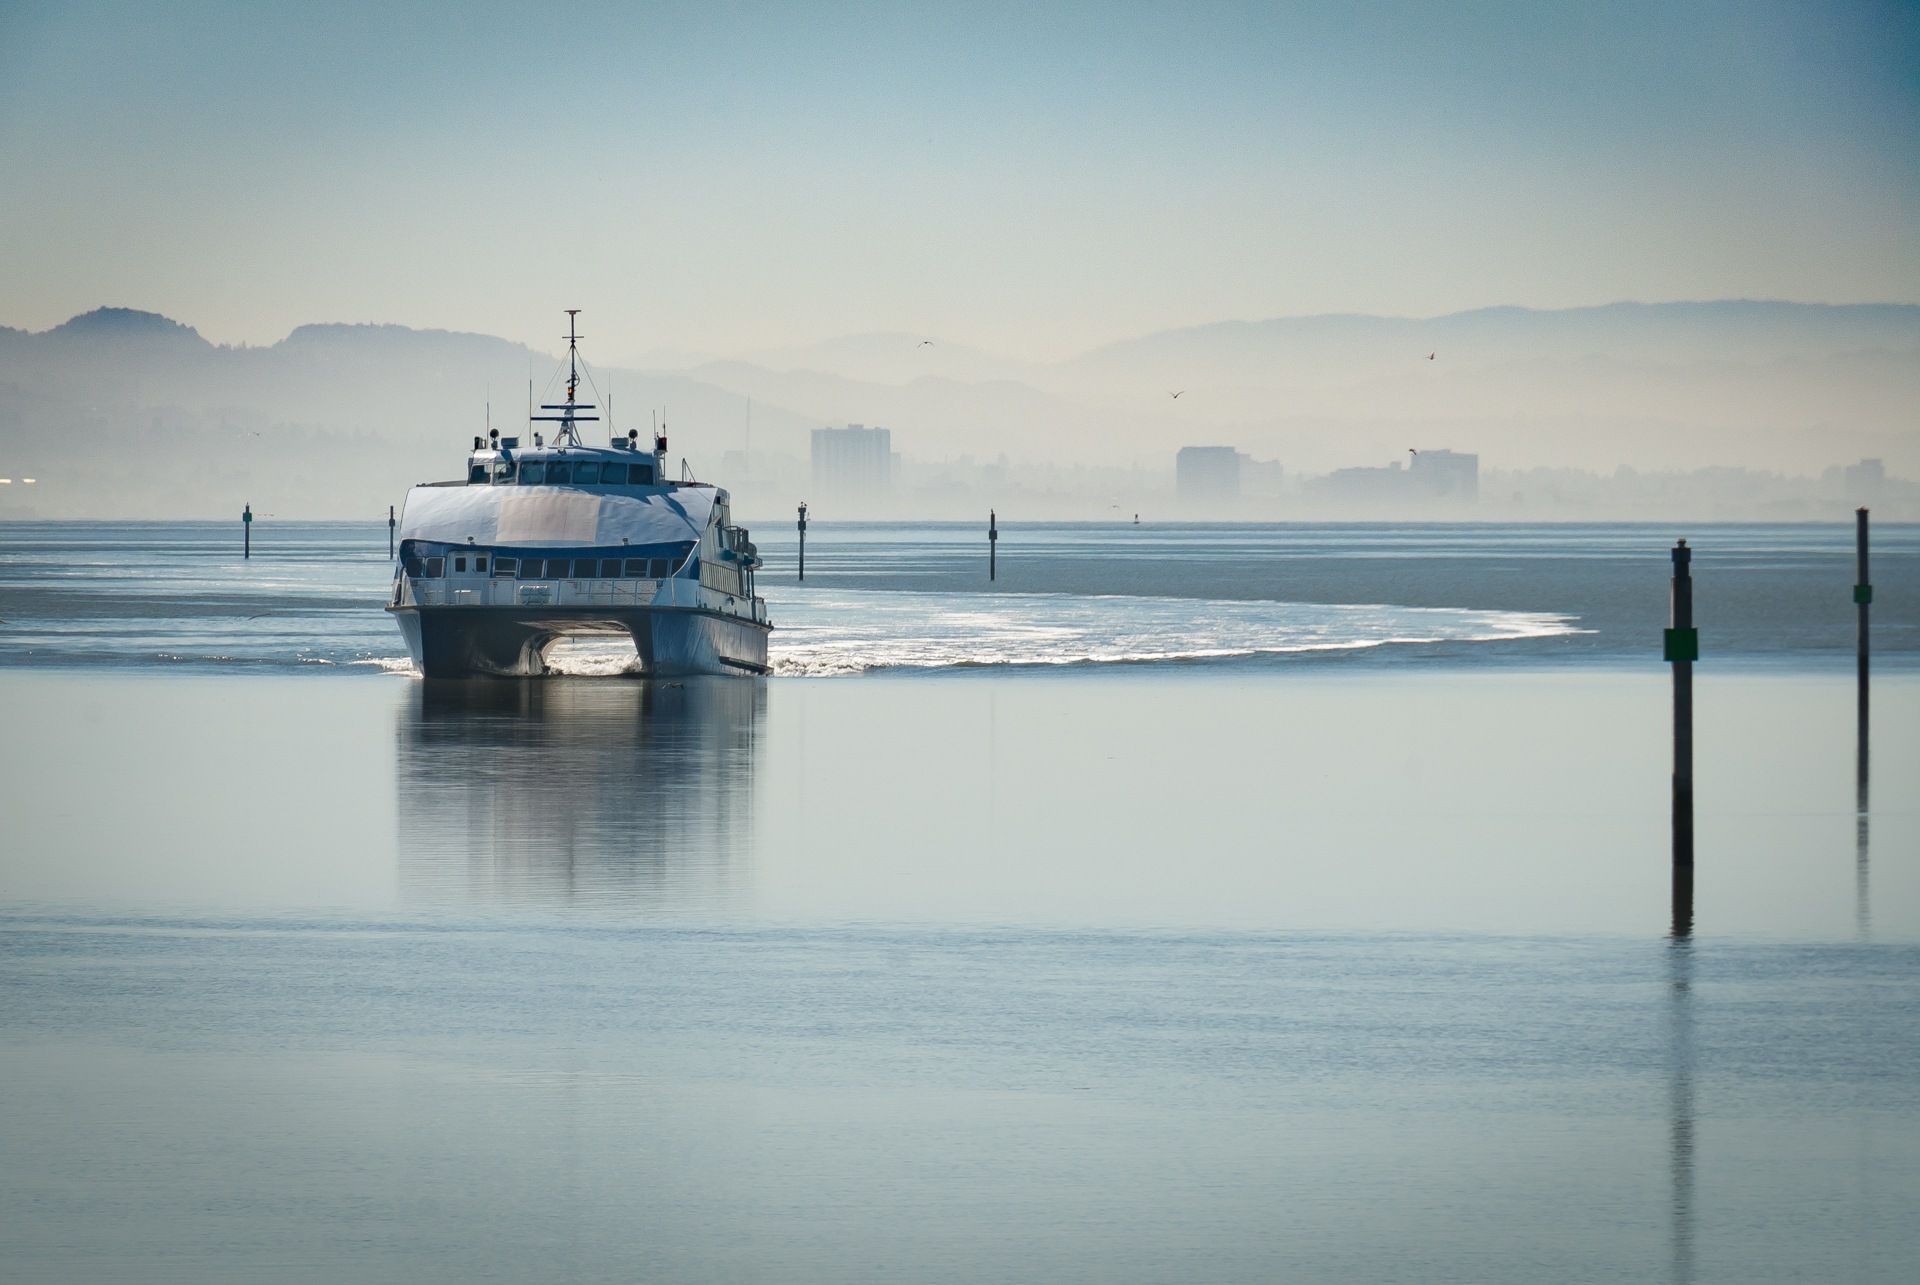 The Golden Gate Ferry by Martyn Howgill